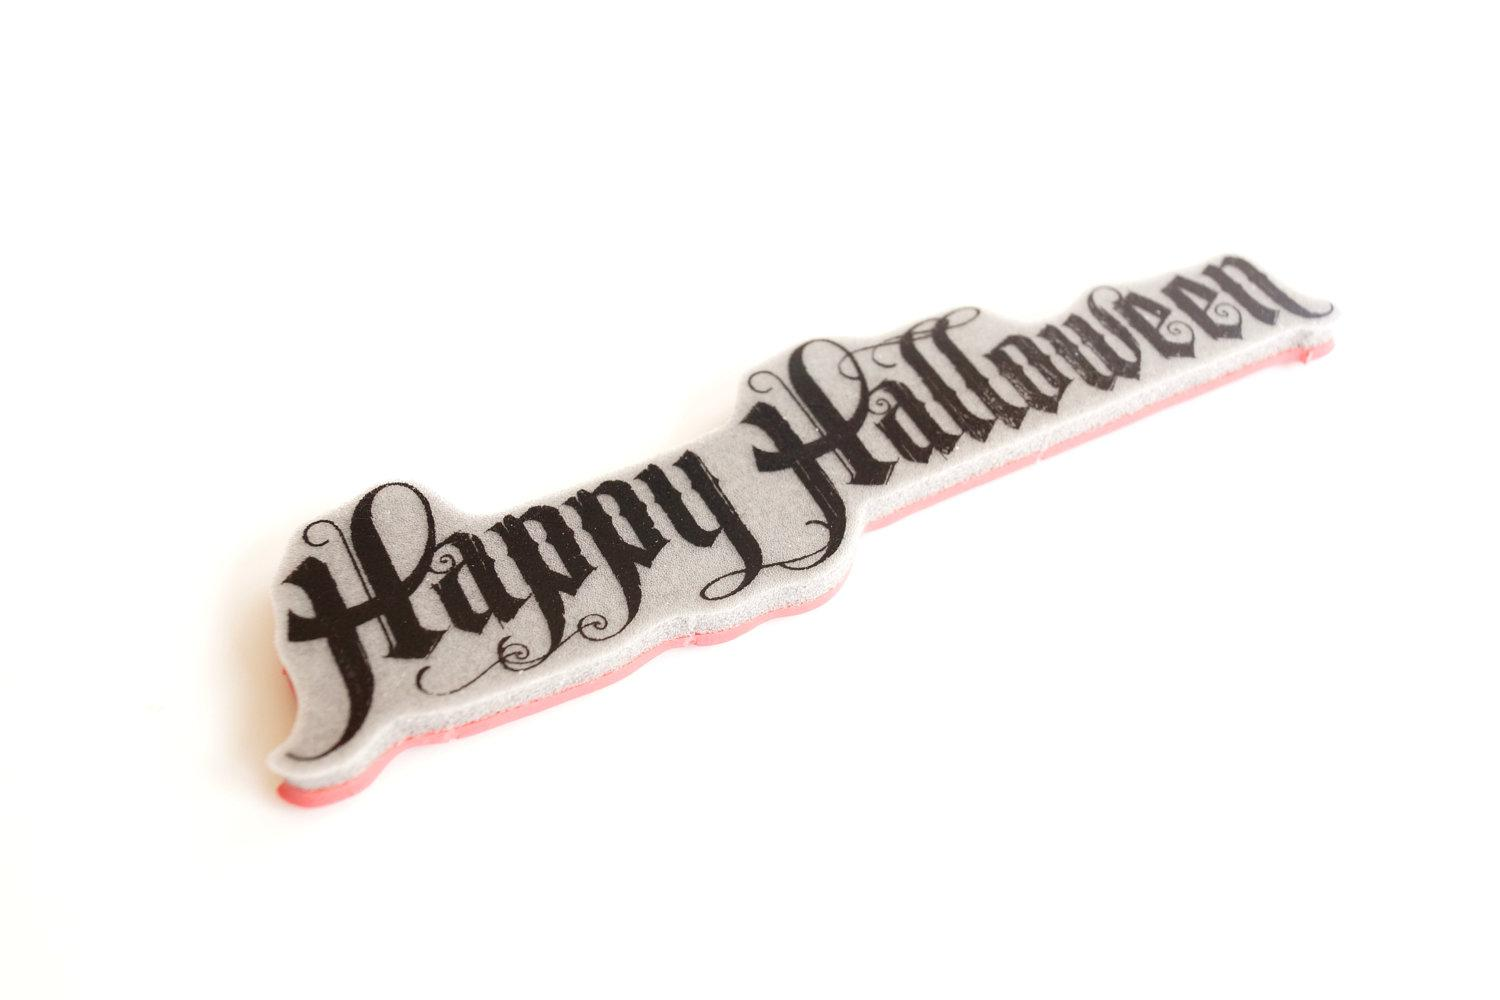 Happy Halloween Text Stamp Rubber Cling Mount Stamp by ThirdShift